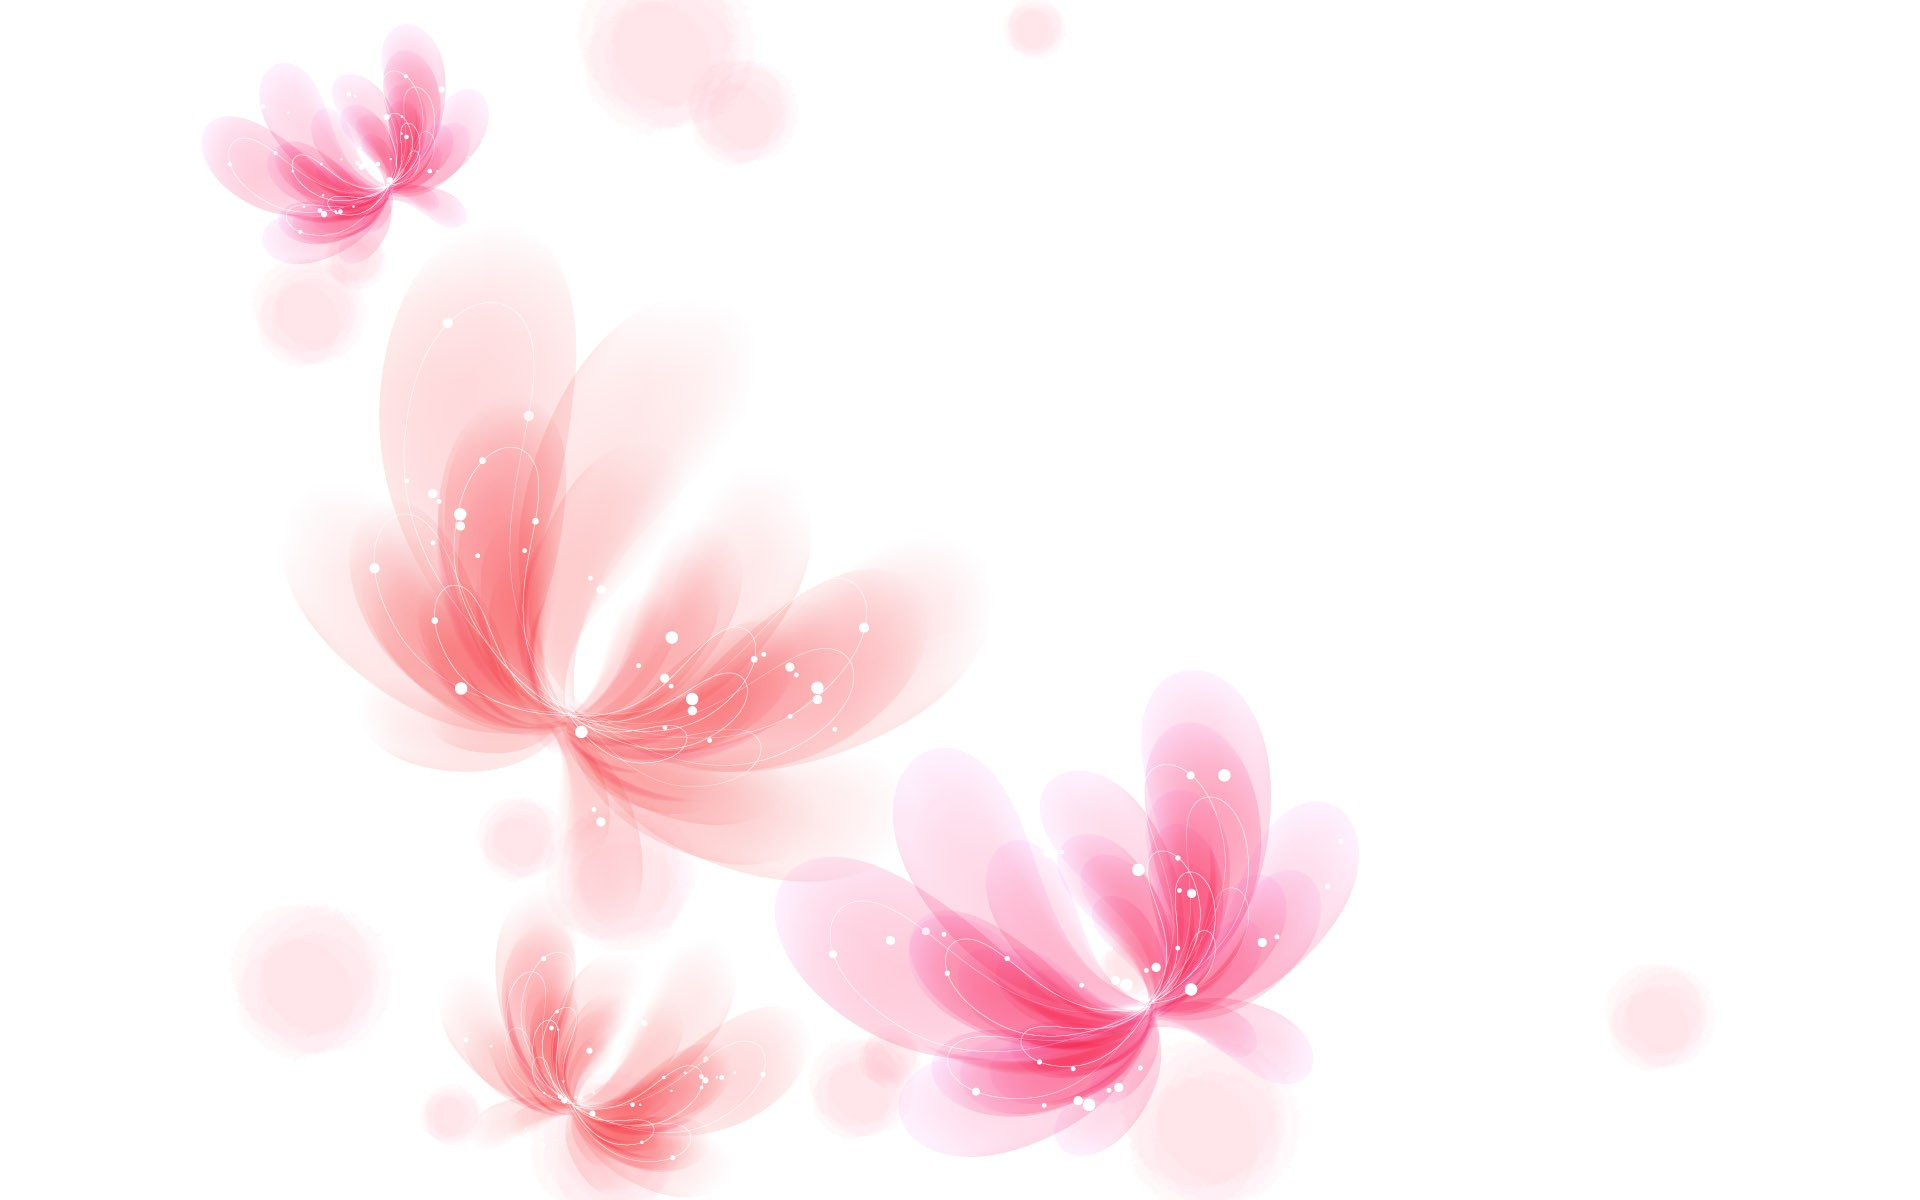 Pink and White Wallpaper 5167